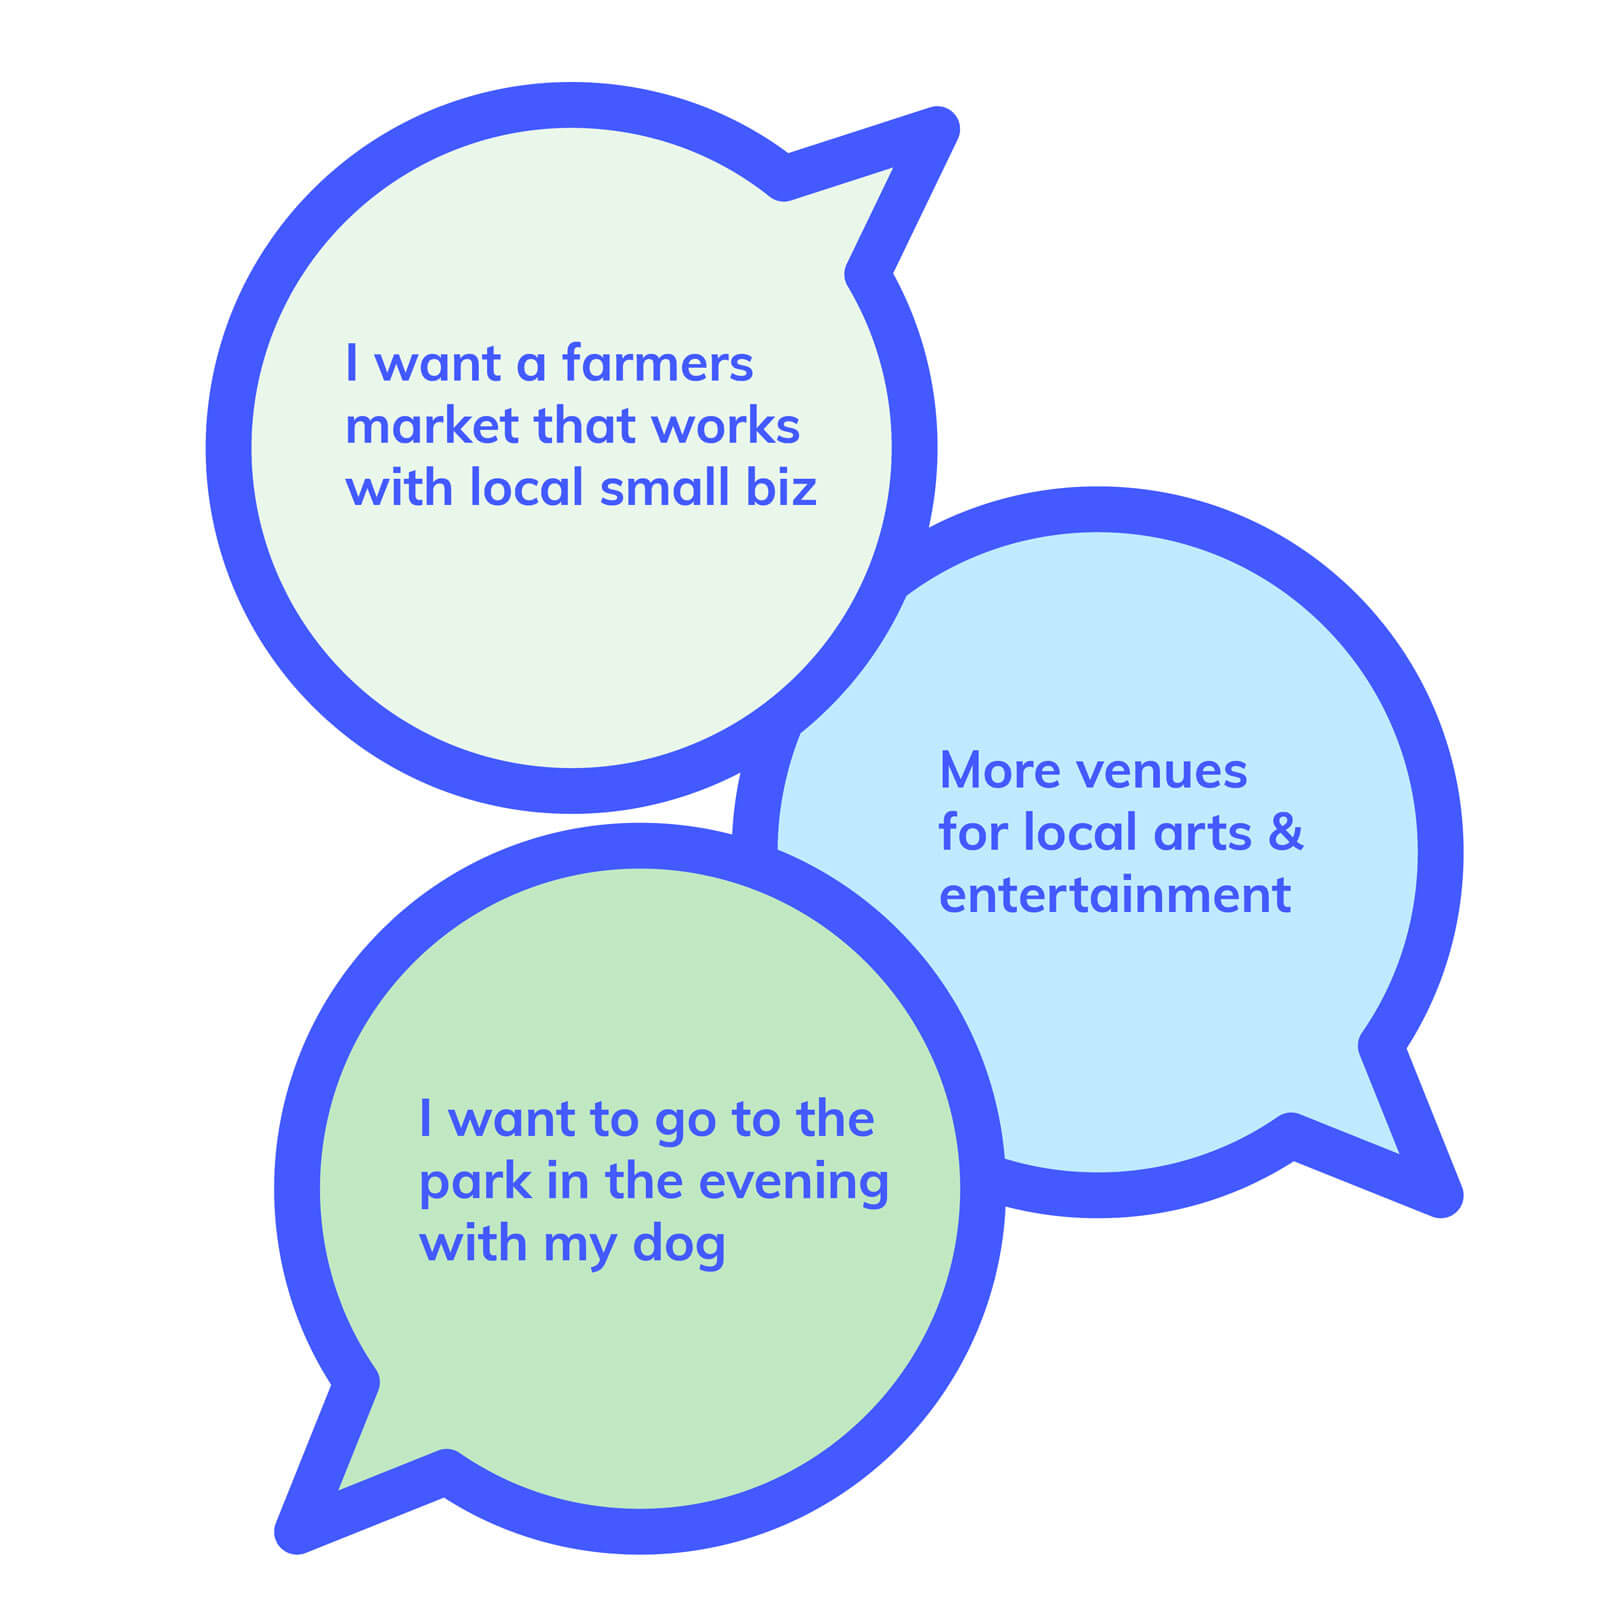 Speech bubbles with examples of what the public might say in a survey response to guide programming recommendations and placemaking efforts.